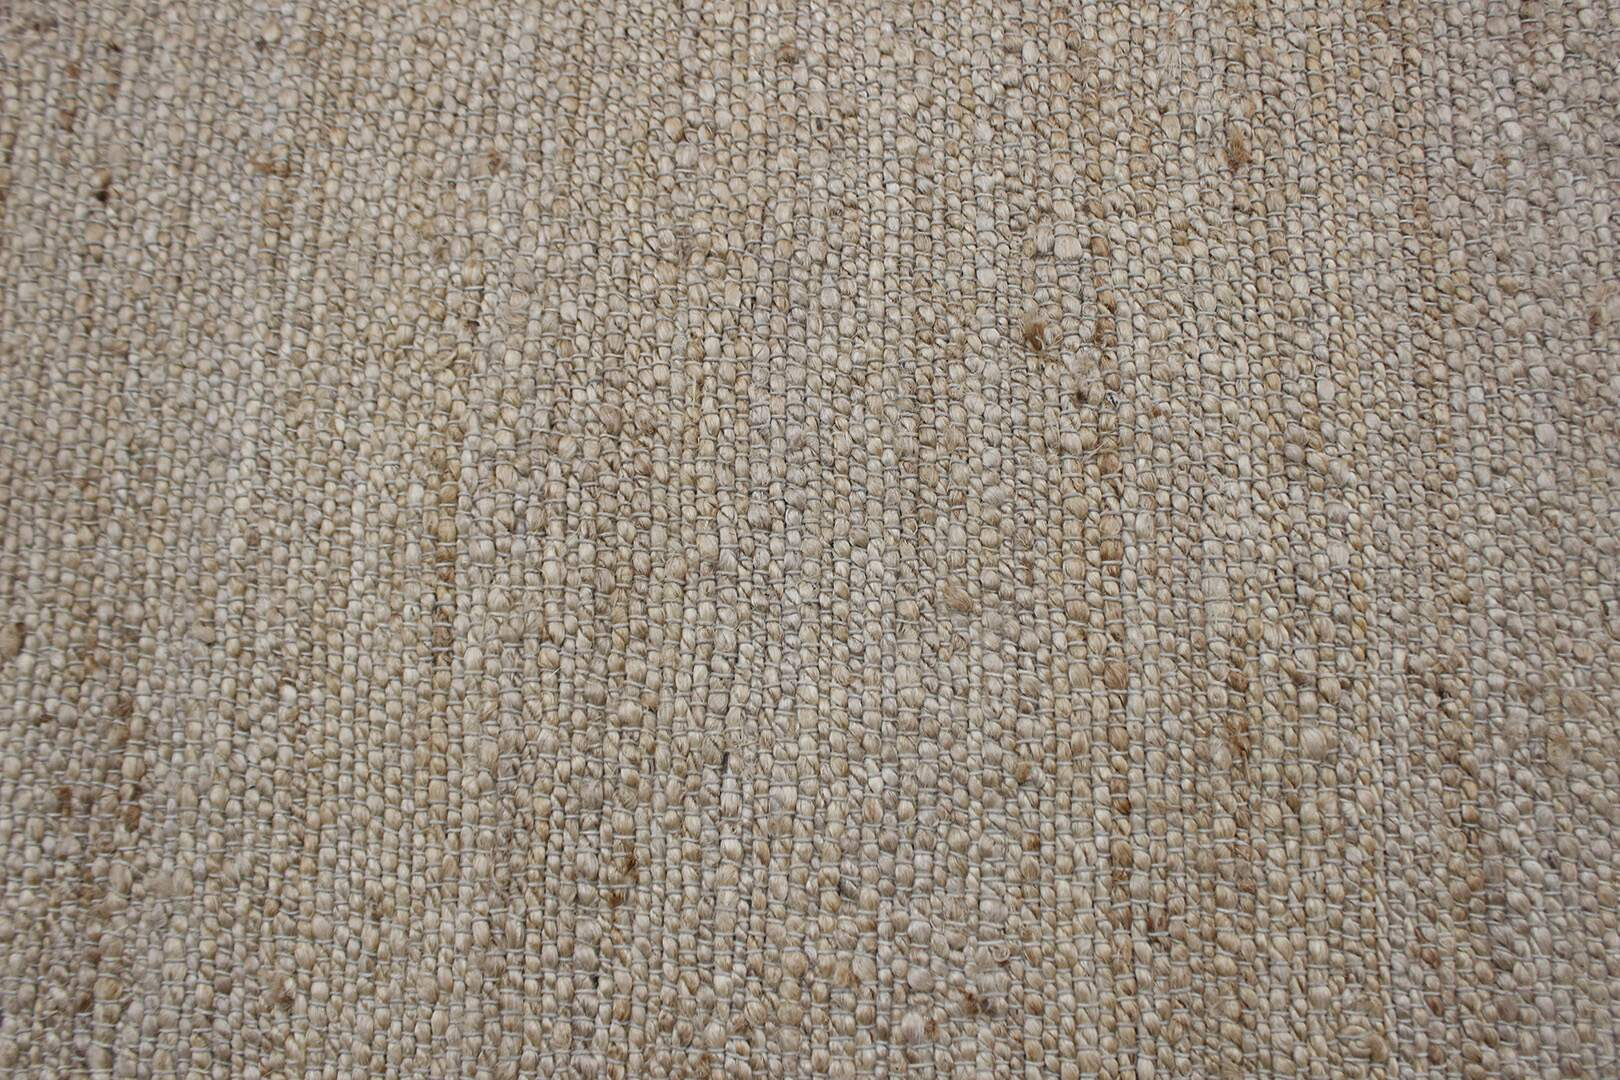 Tapete Kilim Moderno Seagrass Nepal Bege 1,50 x 2,00m